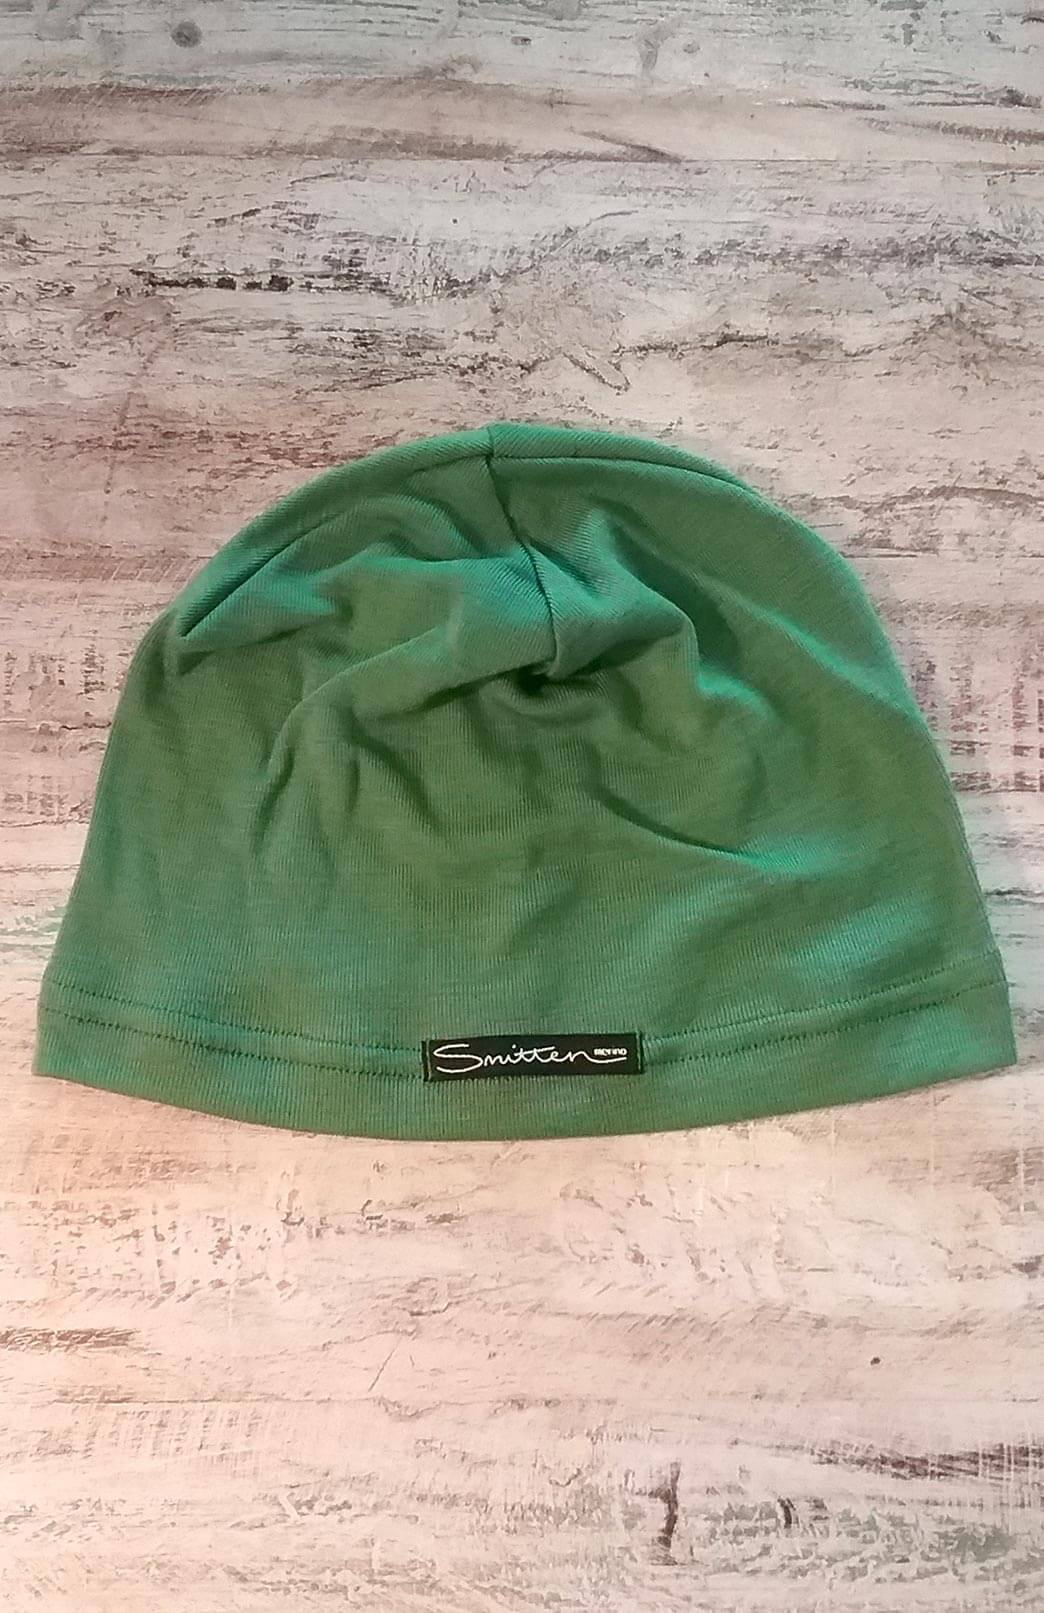 Mid-Weight Beanie (~200g) - Green Mid-Weight Merino Wool Unisex Beanie for everyday use - Smitten Merino Tasmania Australia